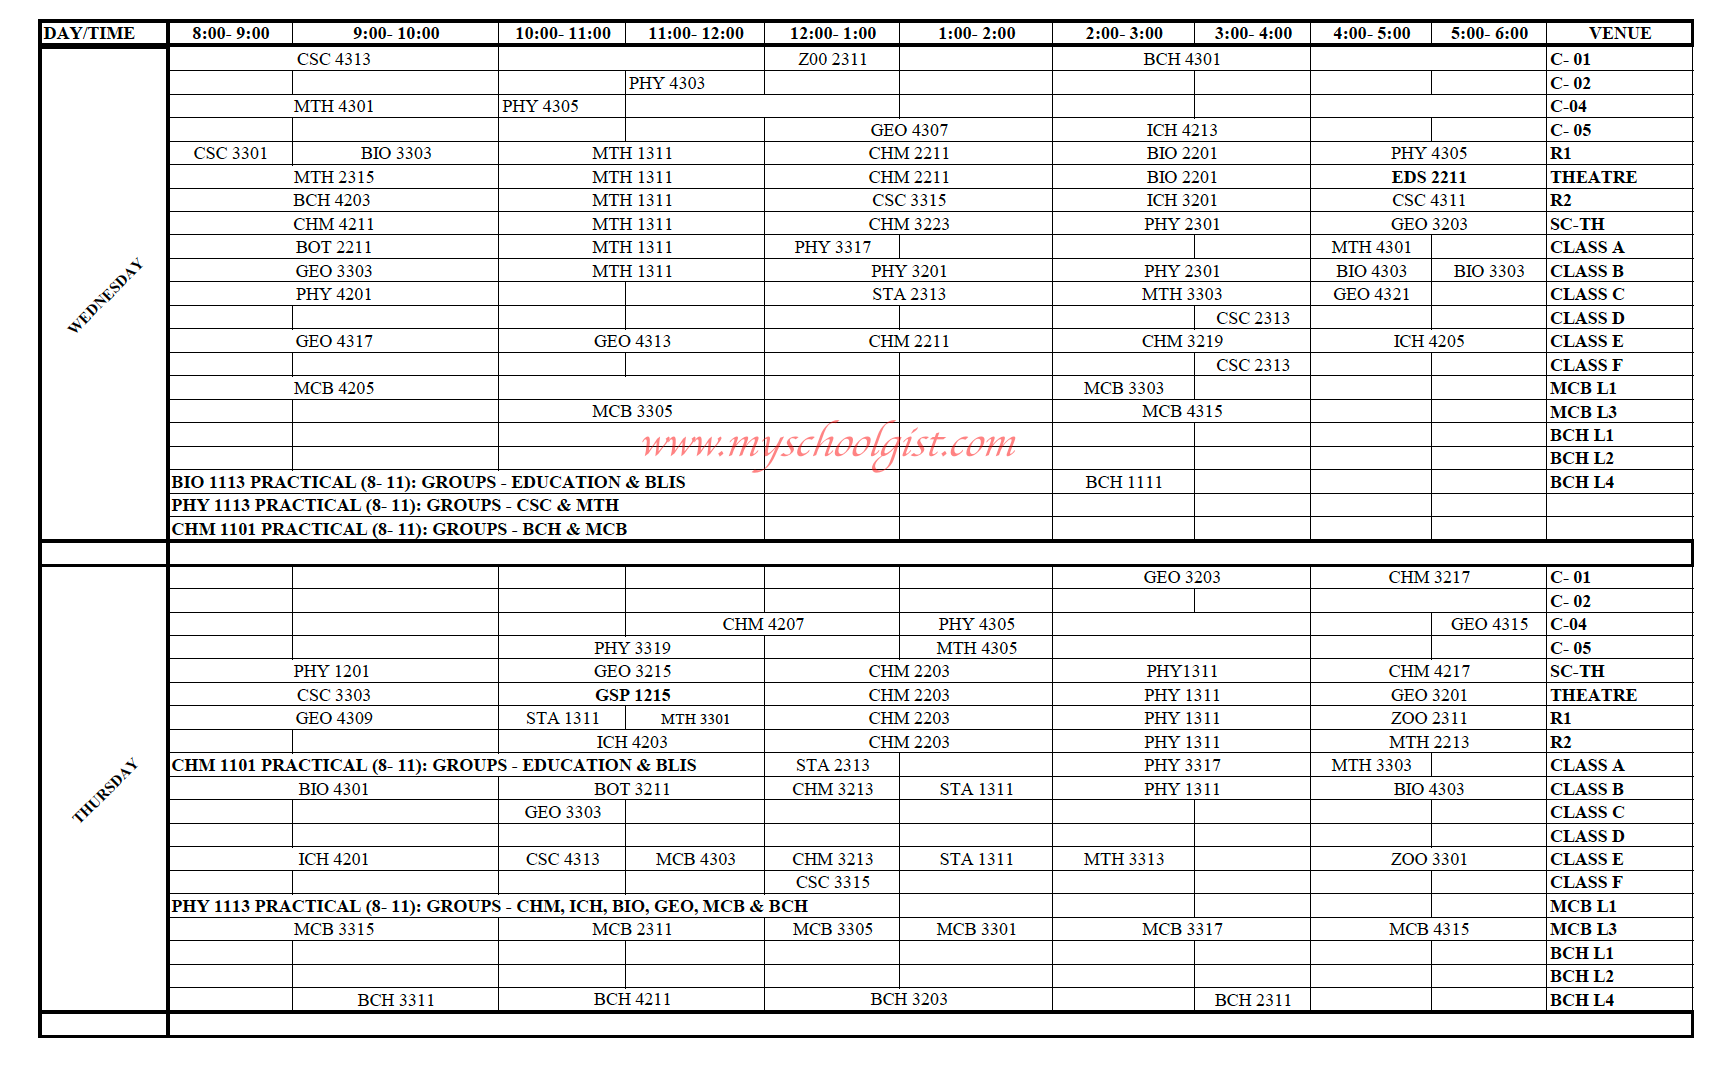 UMYU Lecture Timetable 1